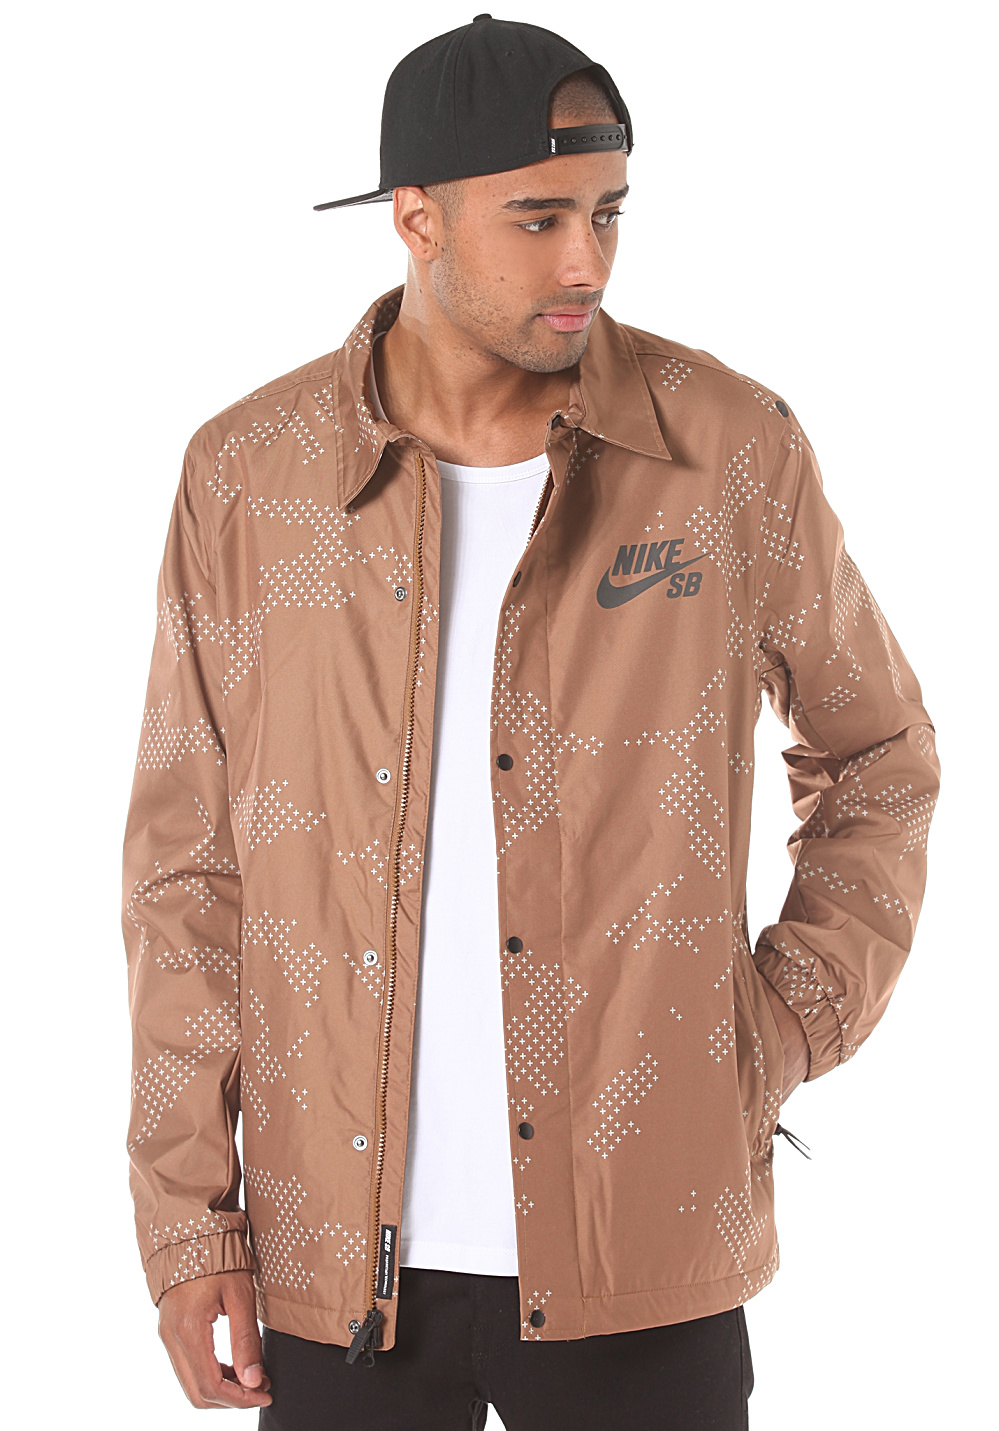 Nike Marron Sb Homme Veste Asst Coaches Pour Planet Sports qZqfCwz